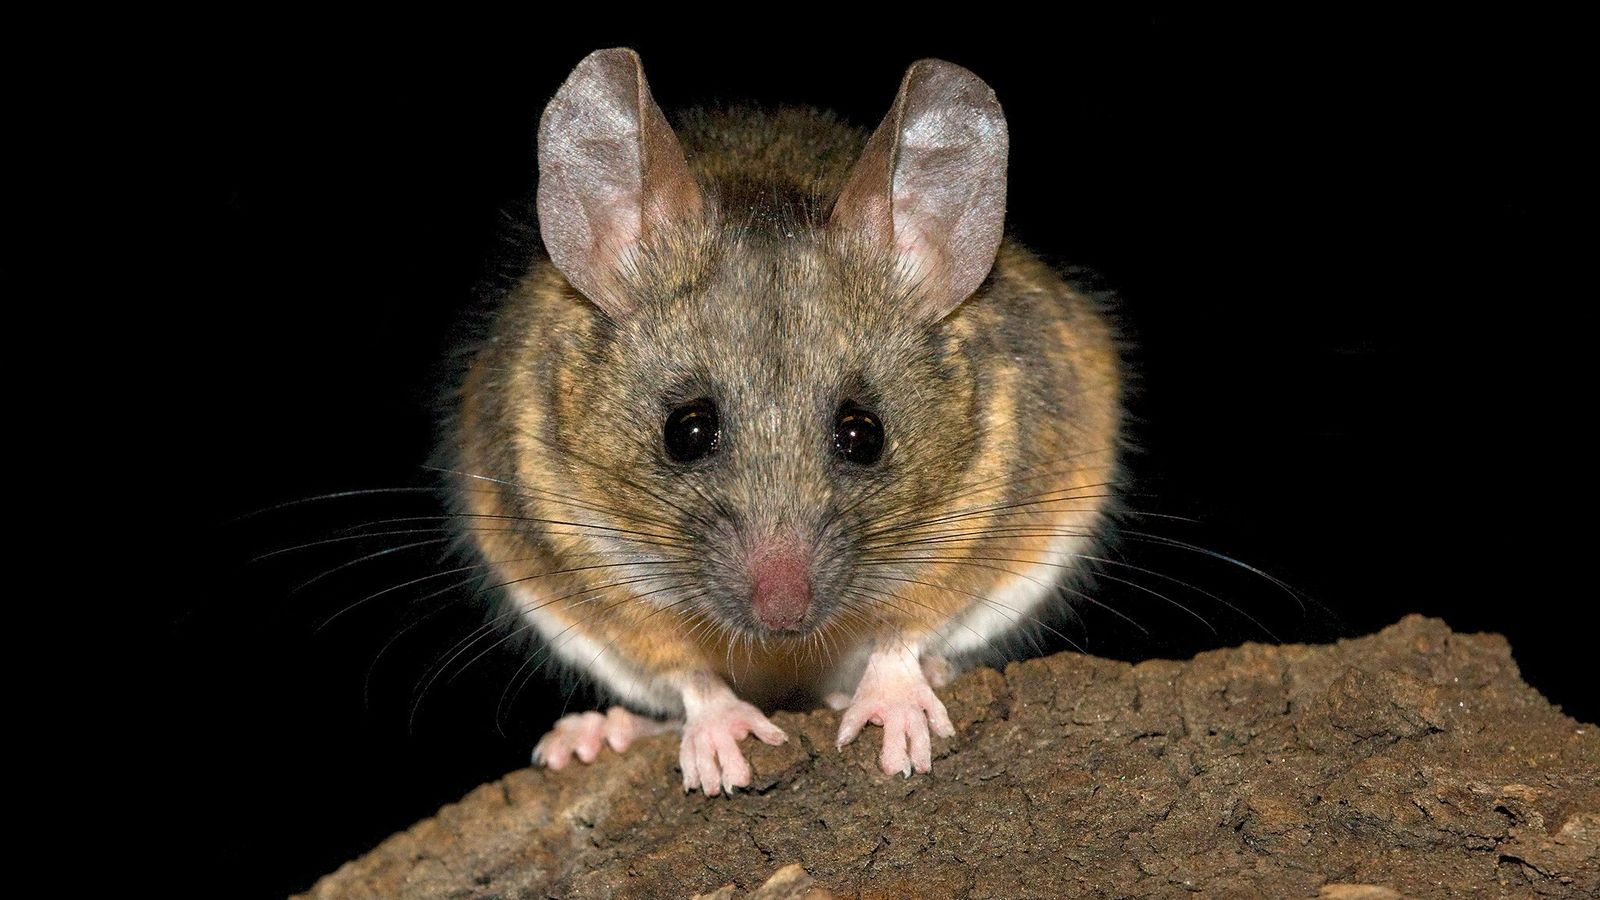 California mice, 'Peromyscus californicus', have a fascinating range of vocalisations, which have allowed researchers to interrogate ...